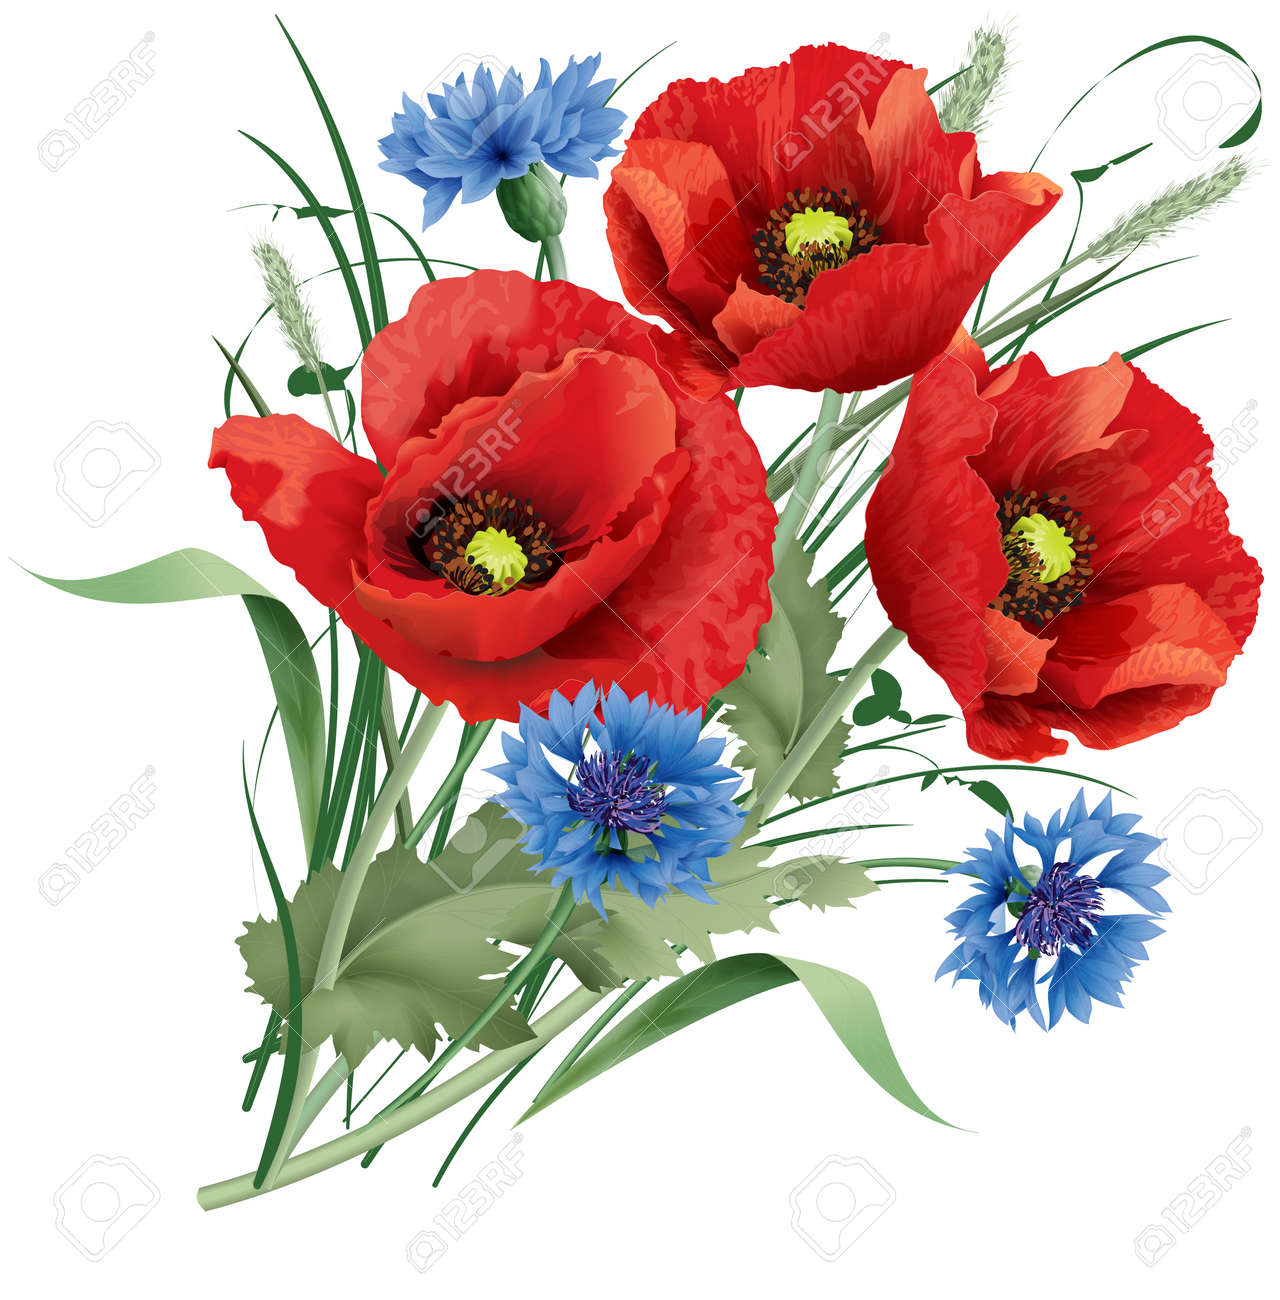 Vector illustration bunch of red poppy flower with green leaves vector vector illustration bunch of red poppy flower with green leaves blue cornflakes and hares foot clover mightylinksfo Choice Image